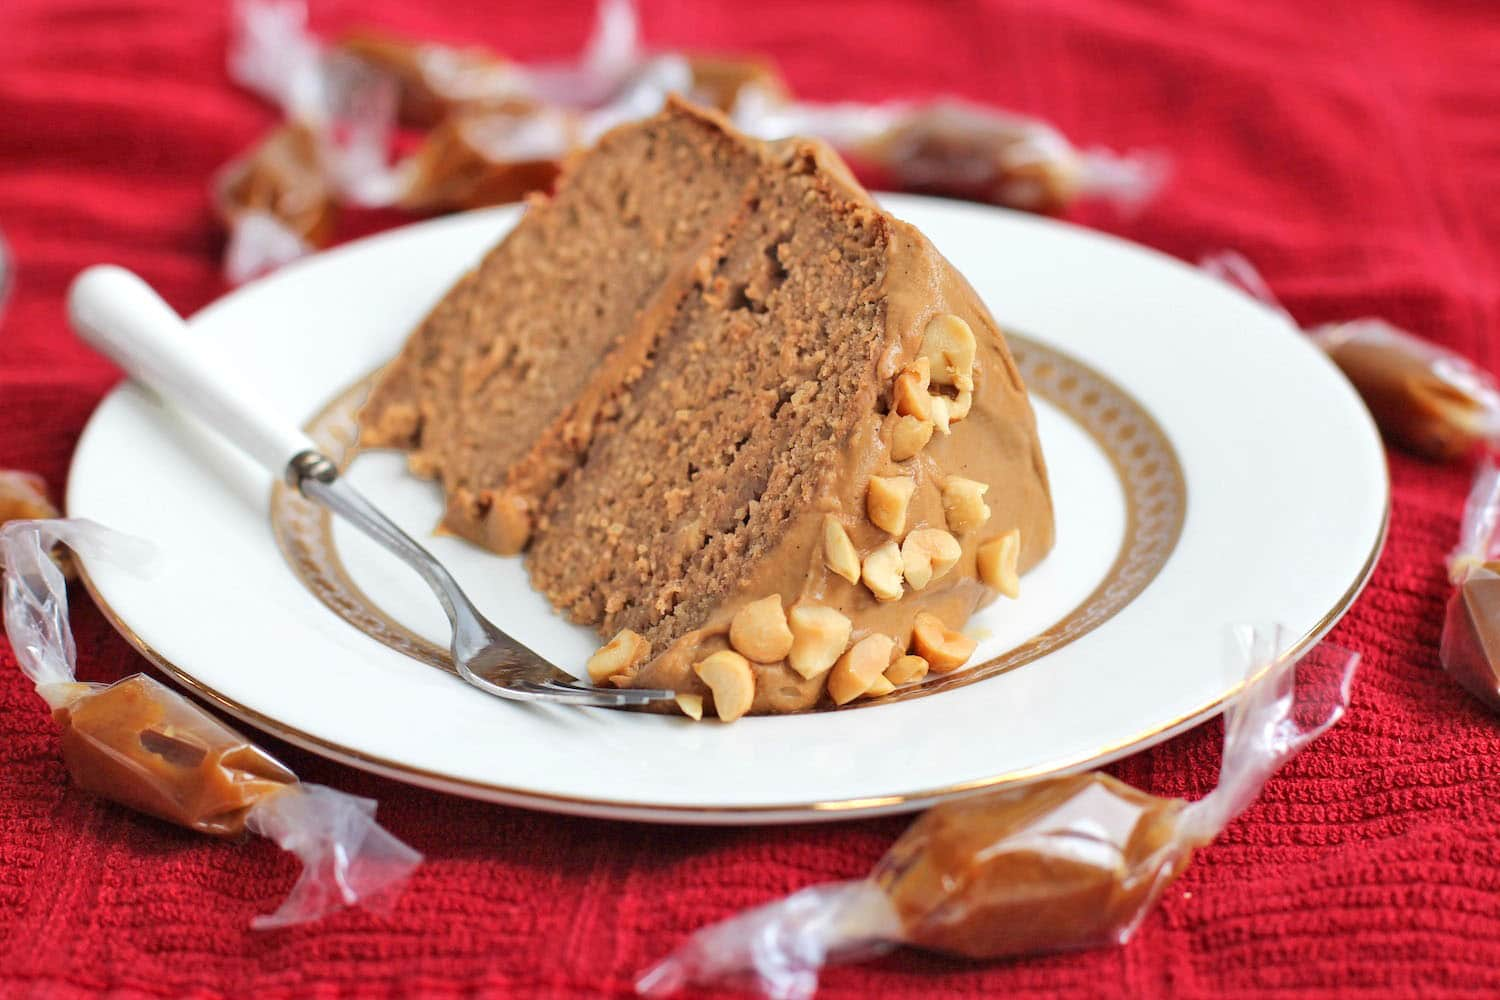 Healthy Peanut Butter Banana Cake with Caramel Frosting Gluten Free